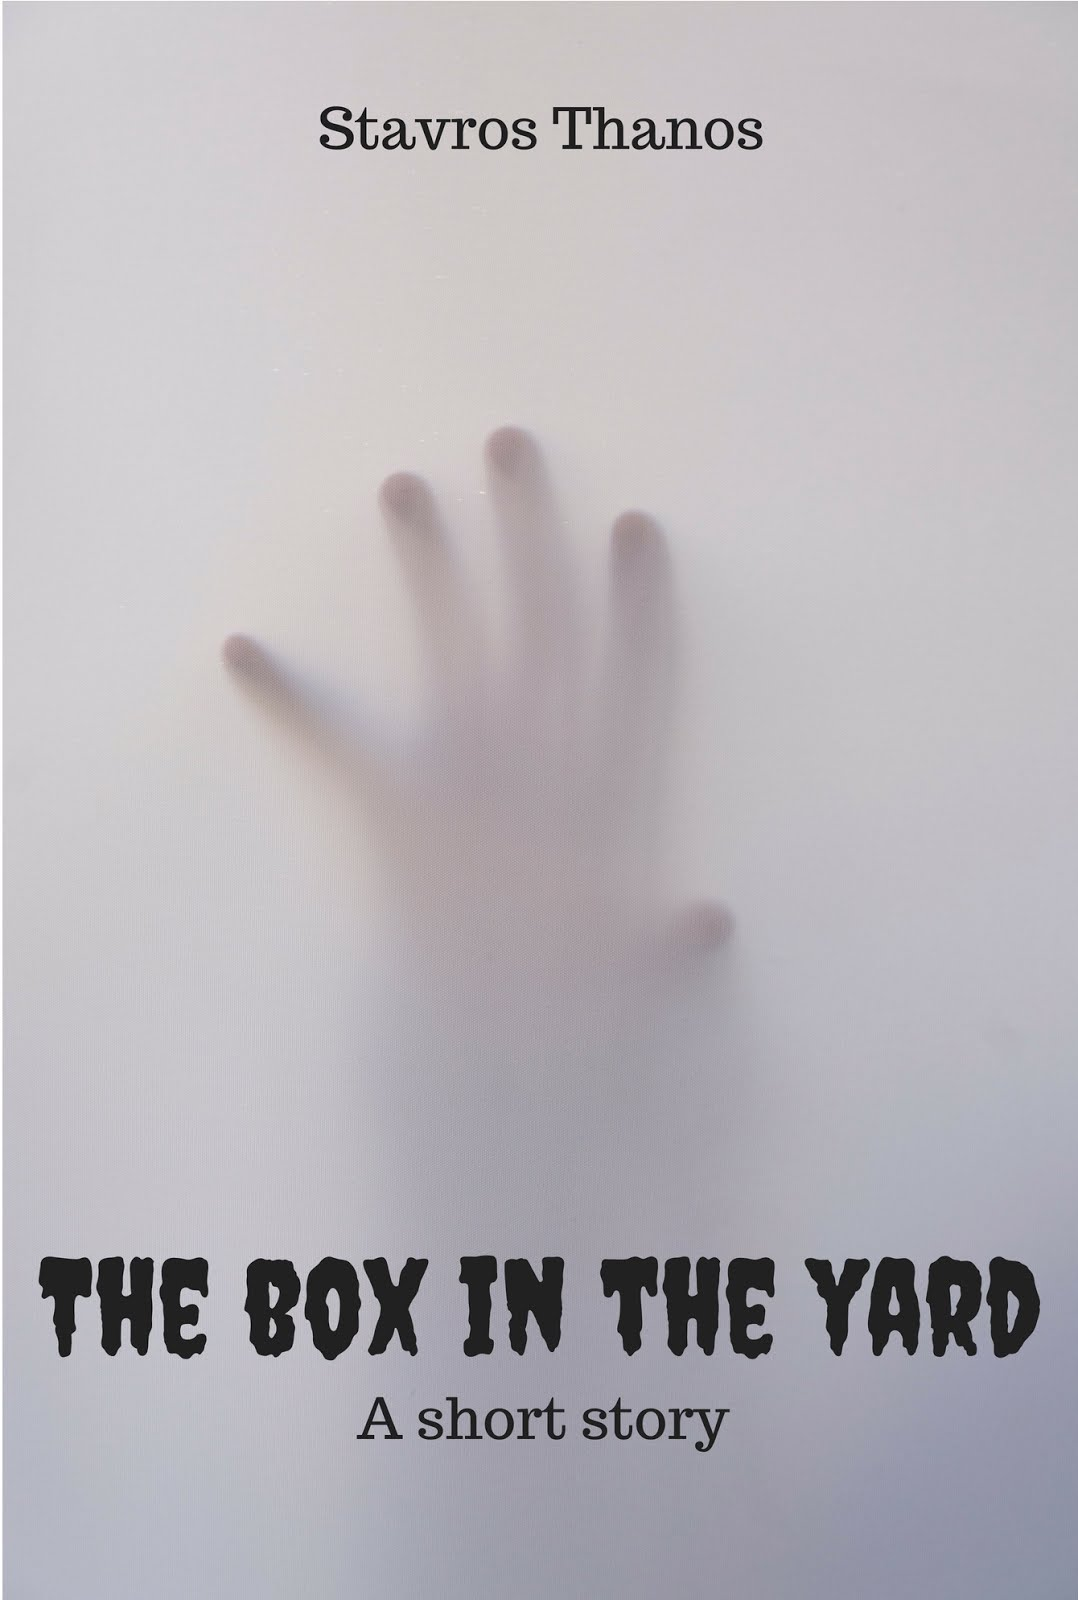 The box in the yard: A short story, by Stavros Thanos